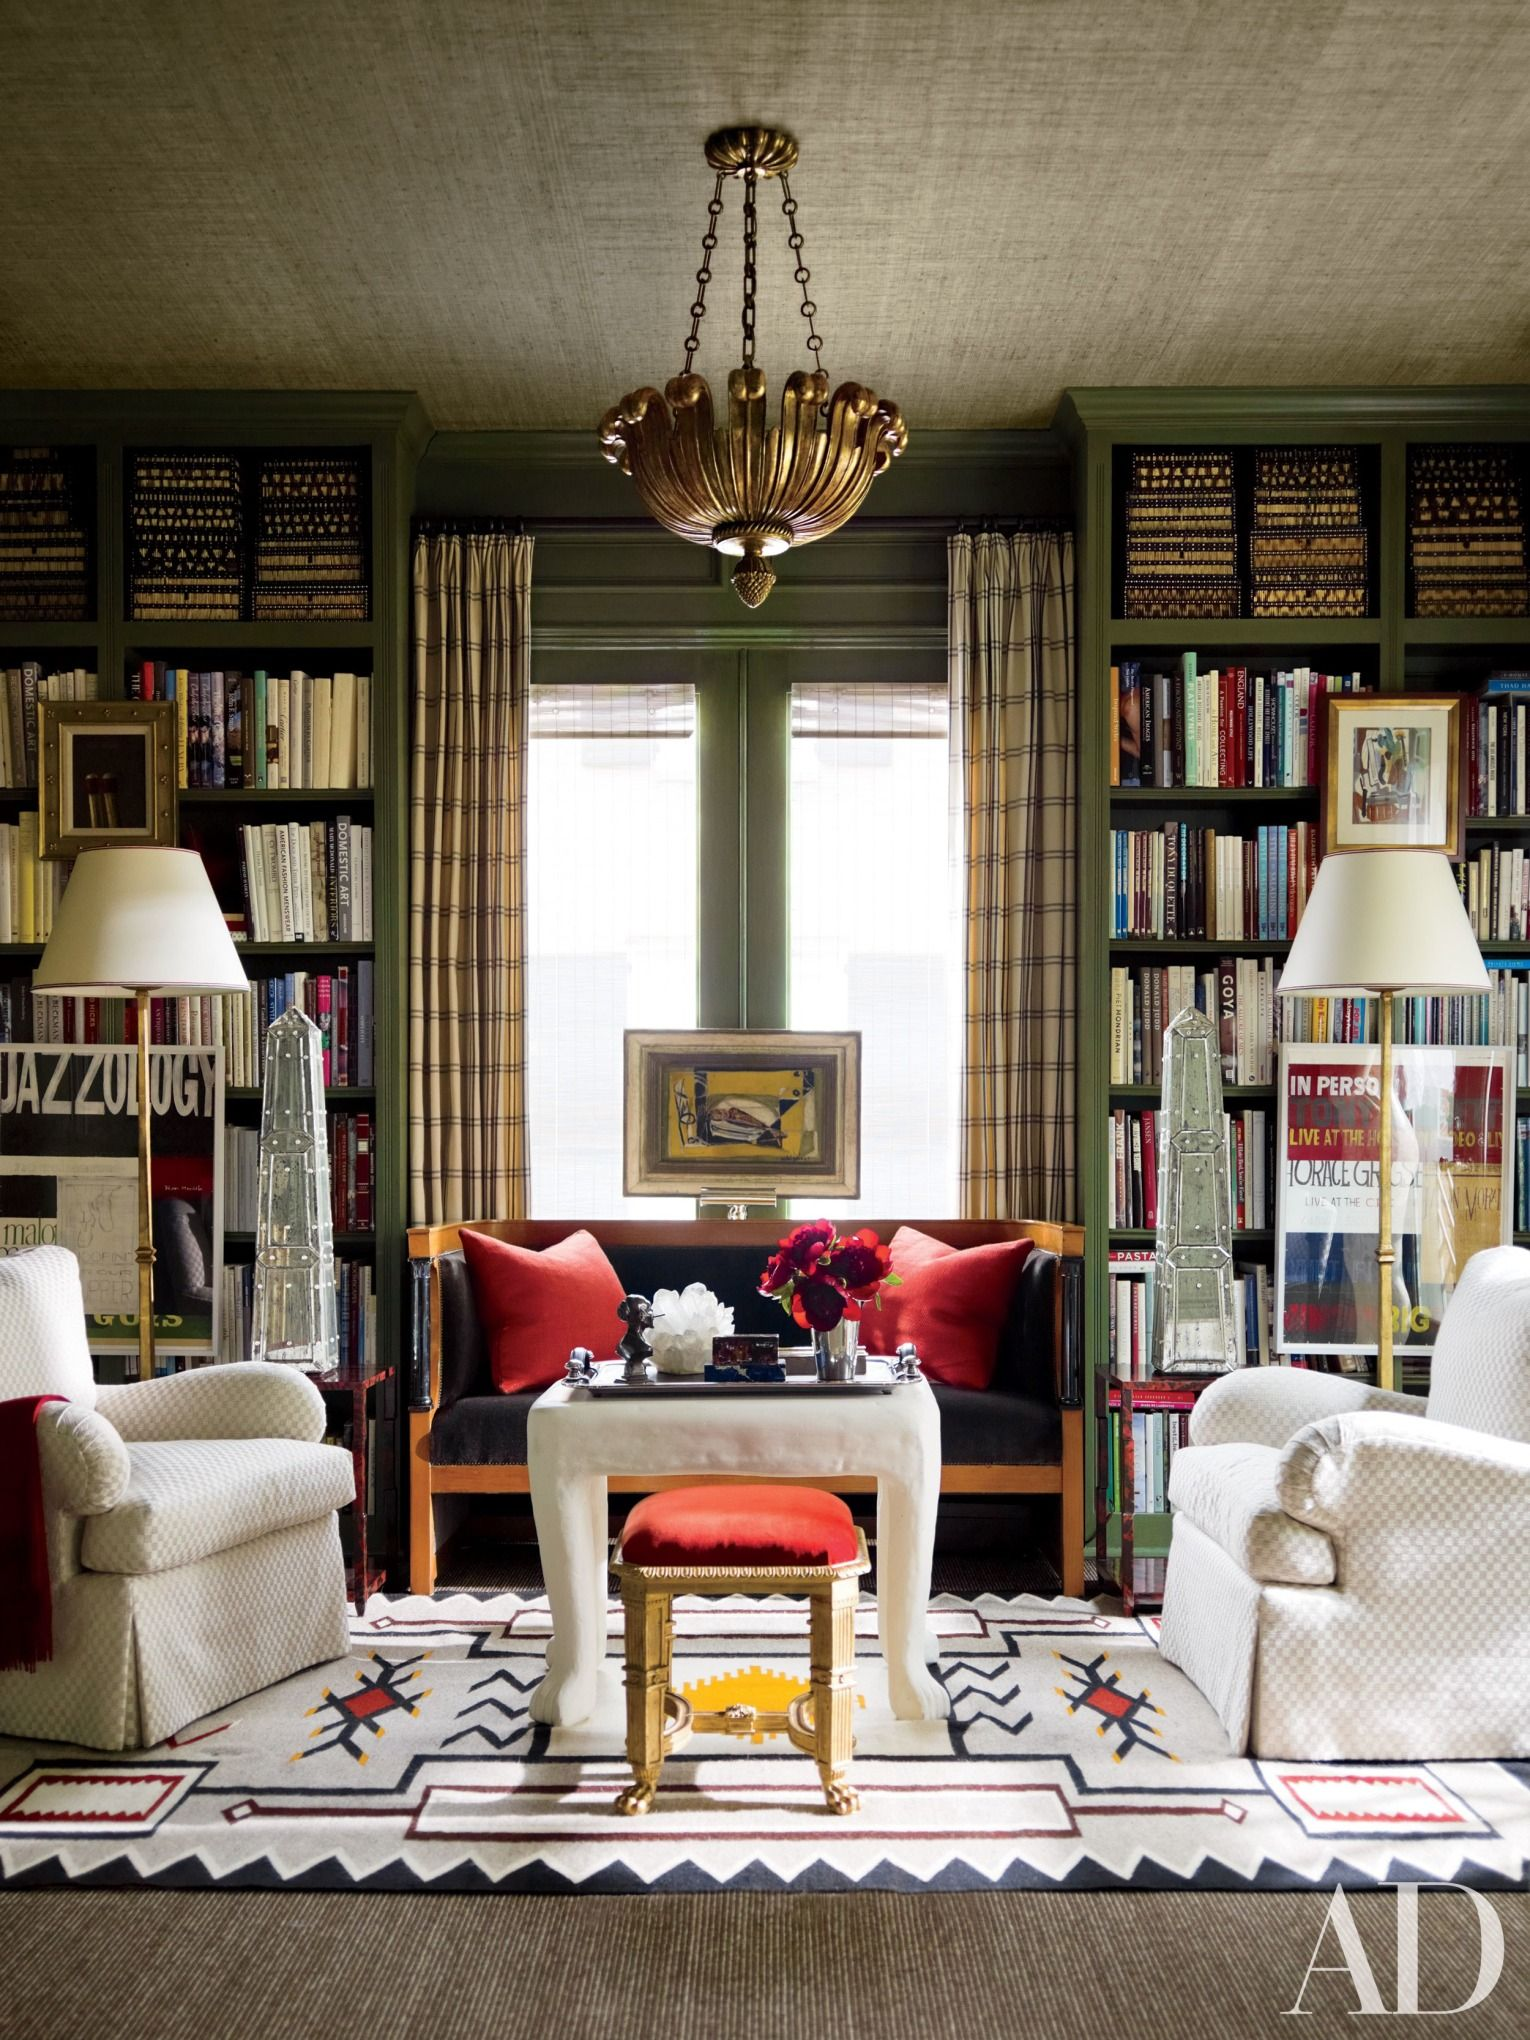 Home Library Decorating Ideas: These Home Libraries Are A Book Lover's Dream